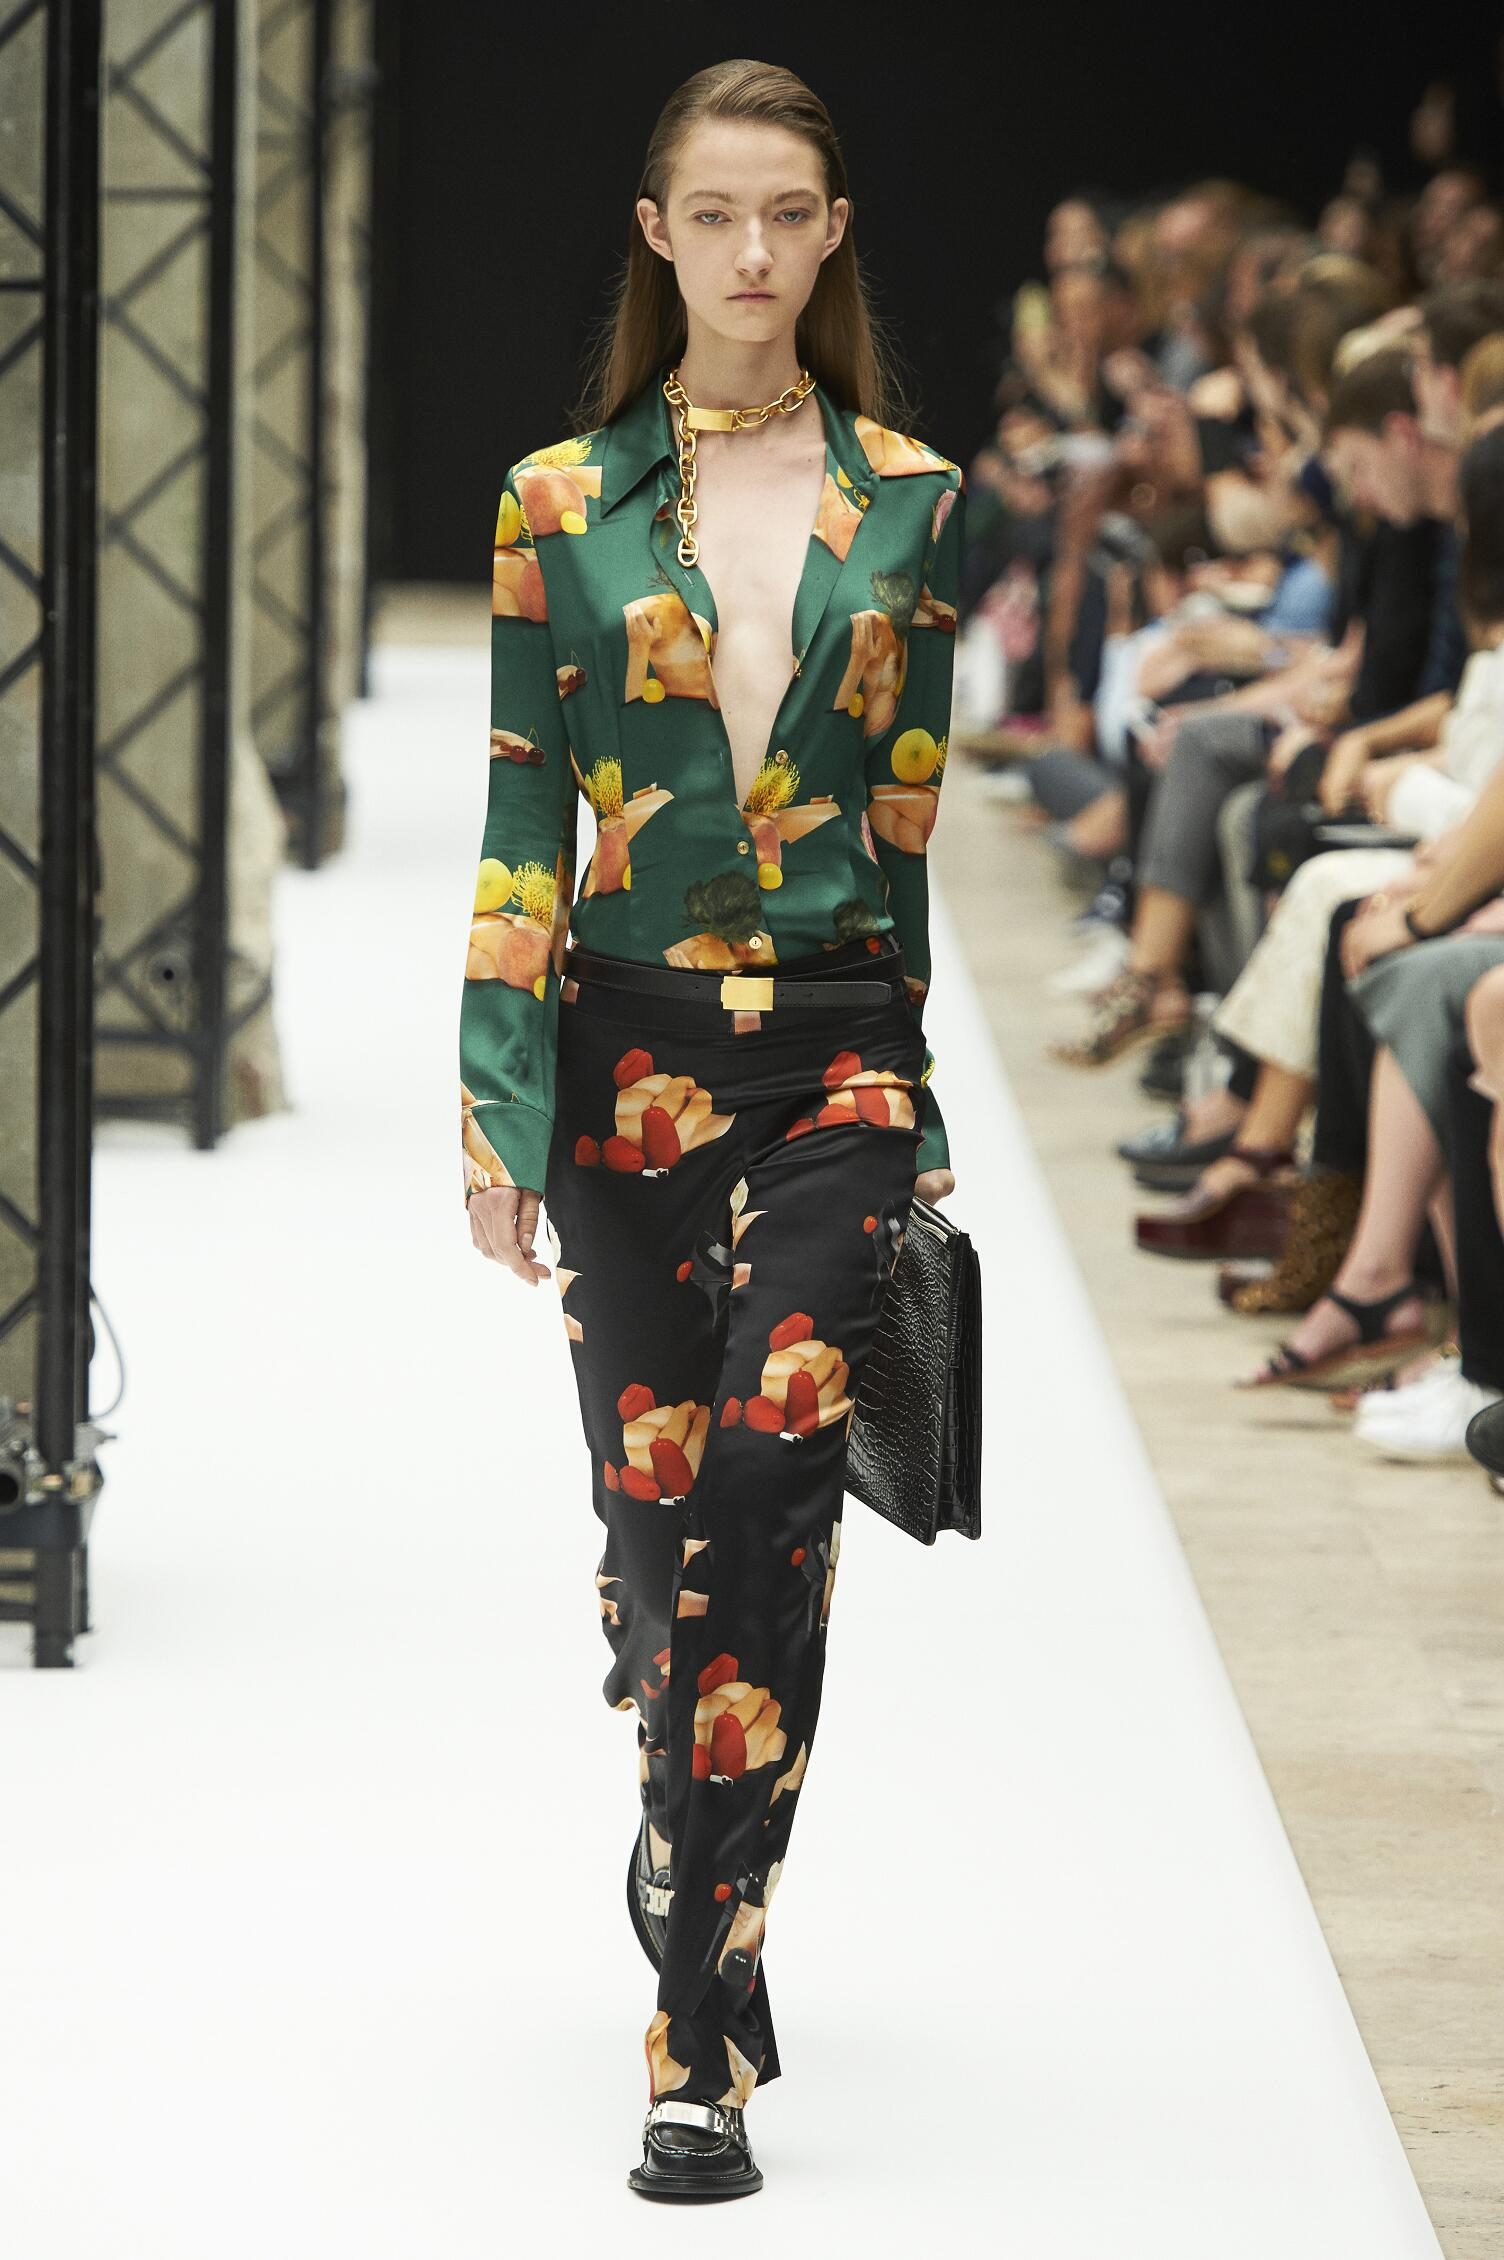 Spring 2015 Woman Fashion Show Acne Studios